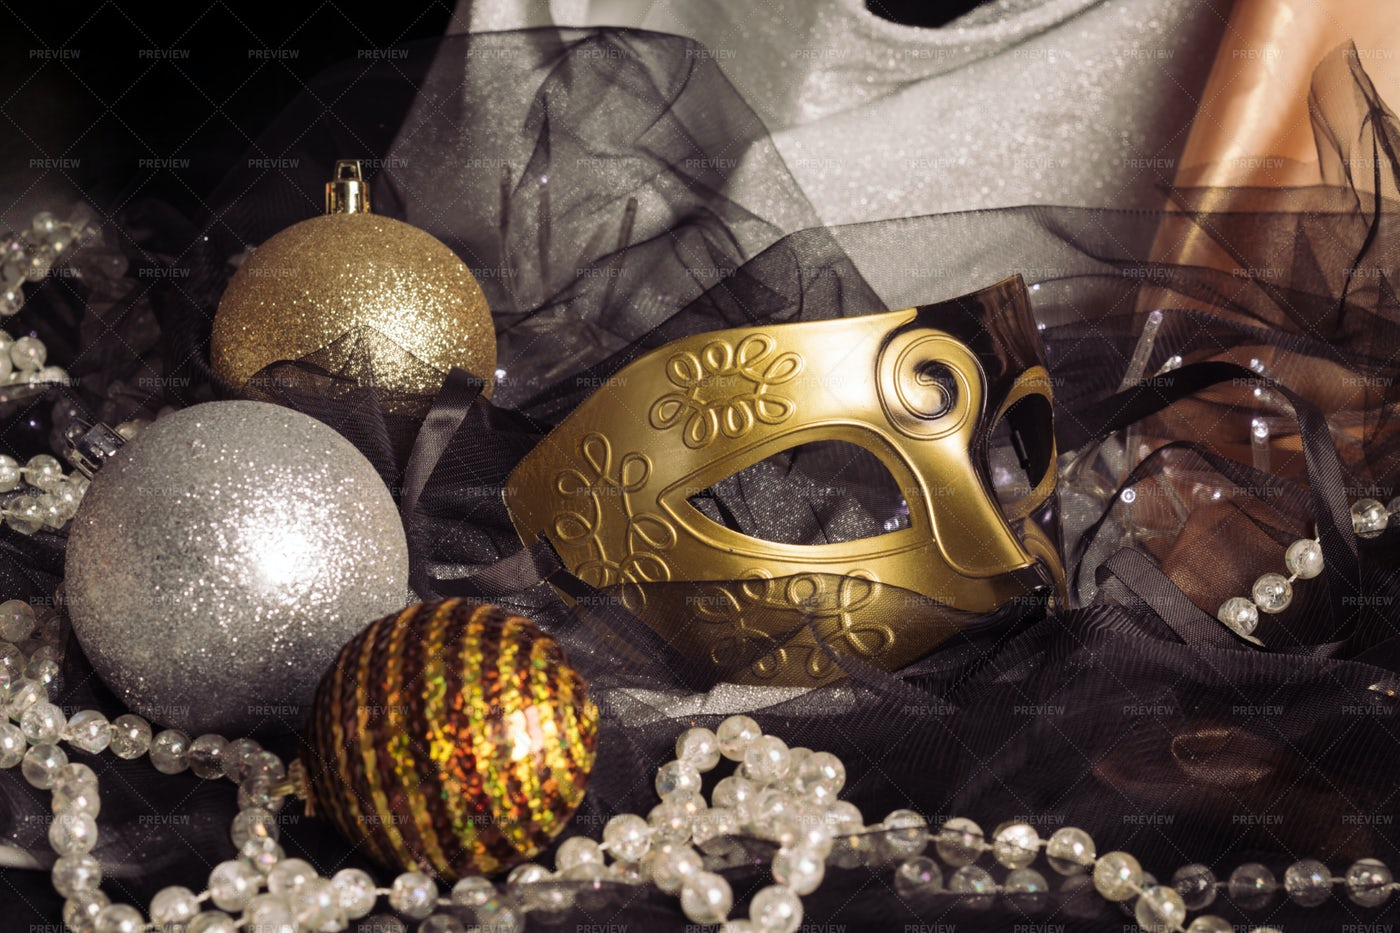 Christmas Ornaments And Carnival Mask: Stock Photos